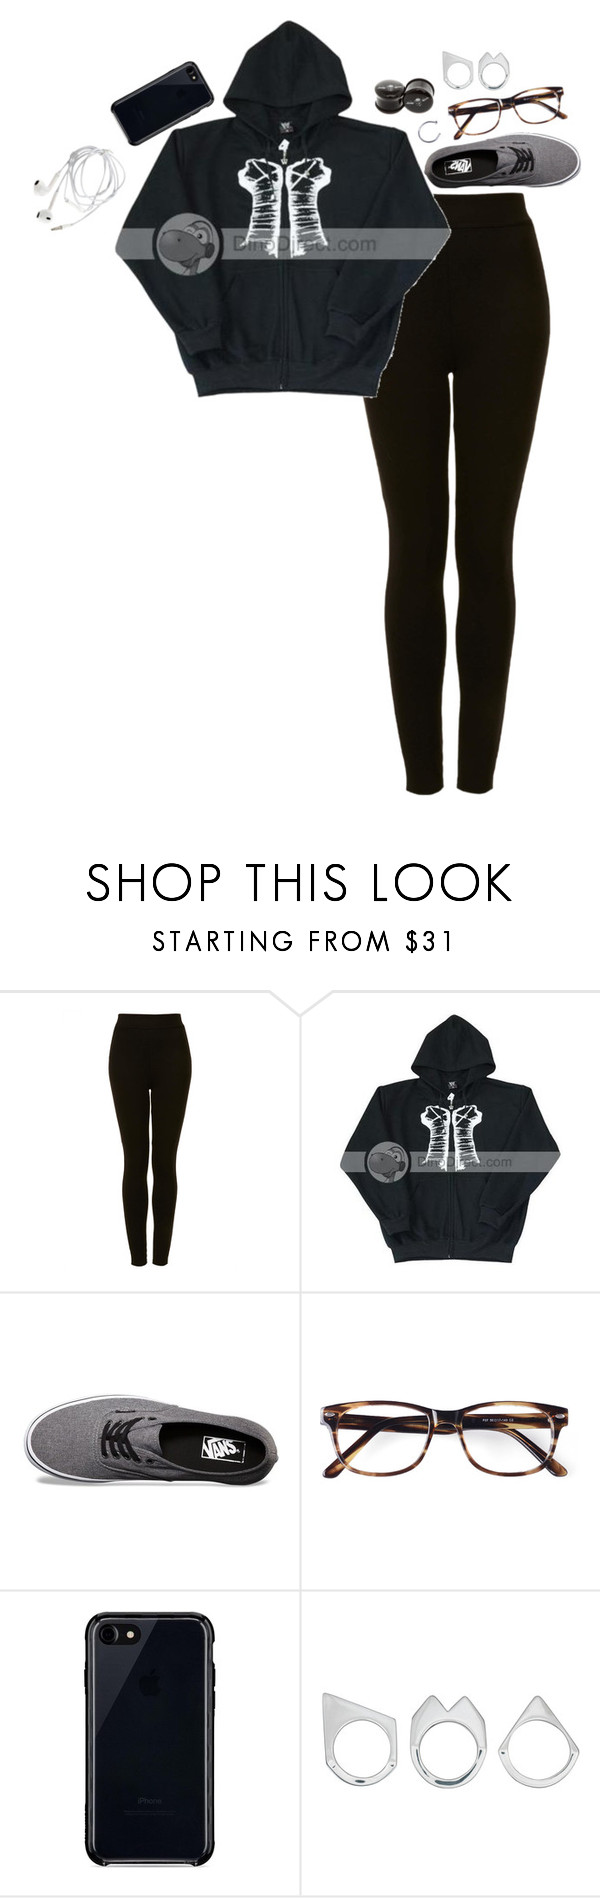 """i miss the show solitary"" by un-iversal ❤ liked on Polyvore featuring Topshop, WWE, Vans, Belkin and Moratorium"